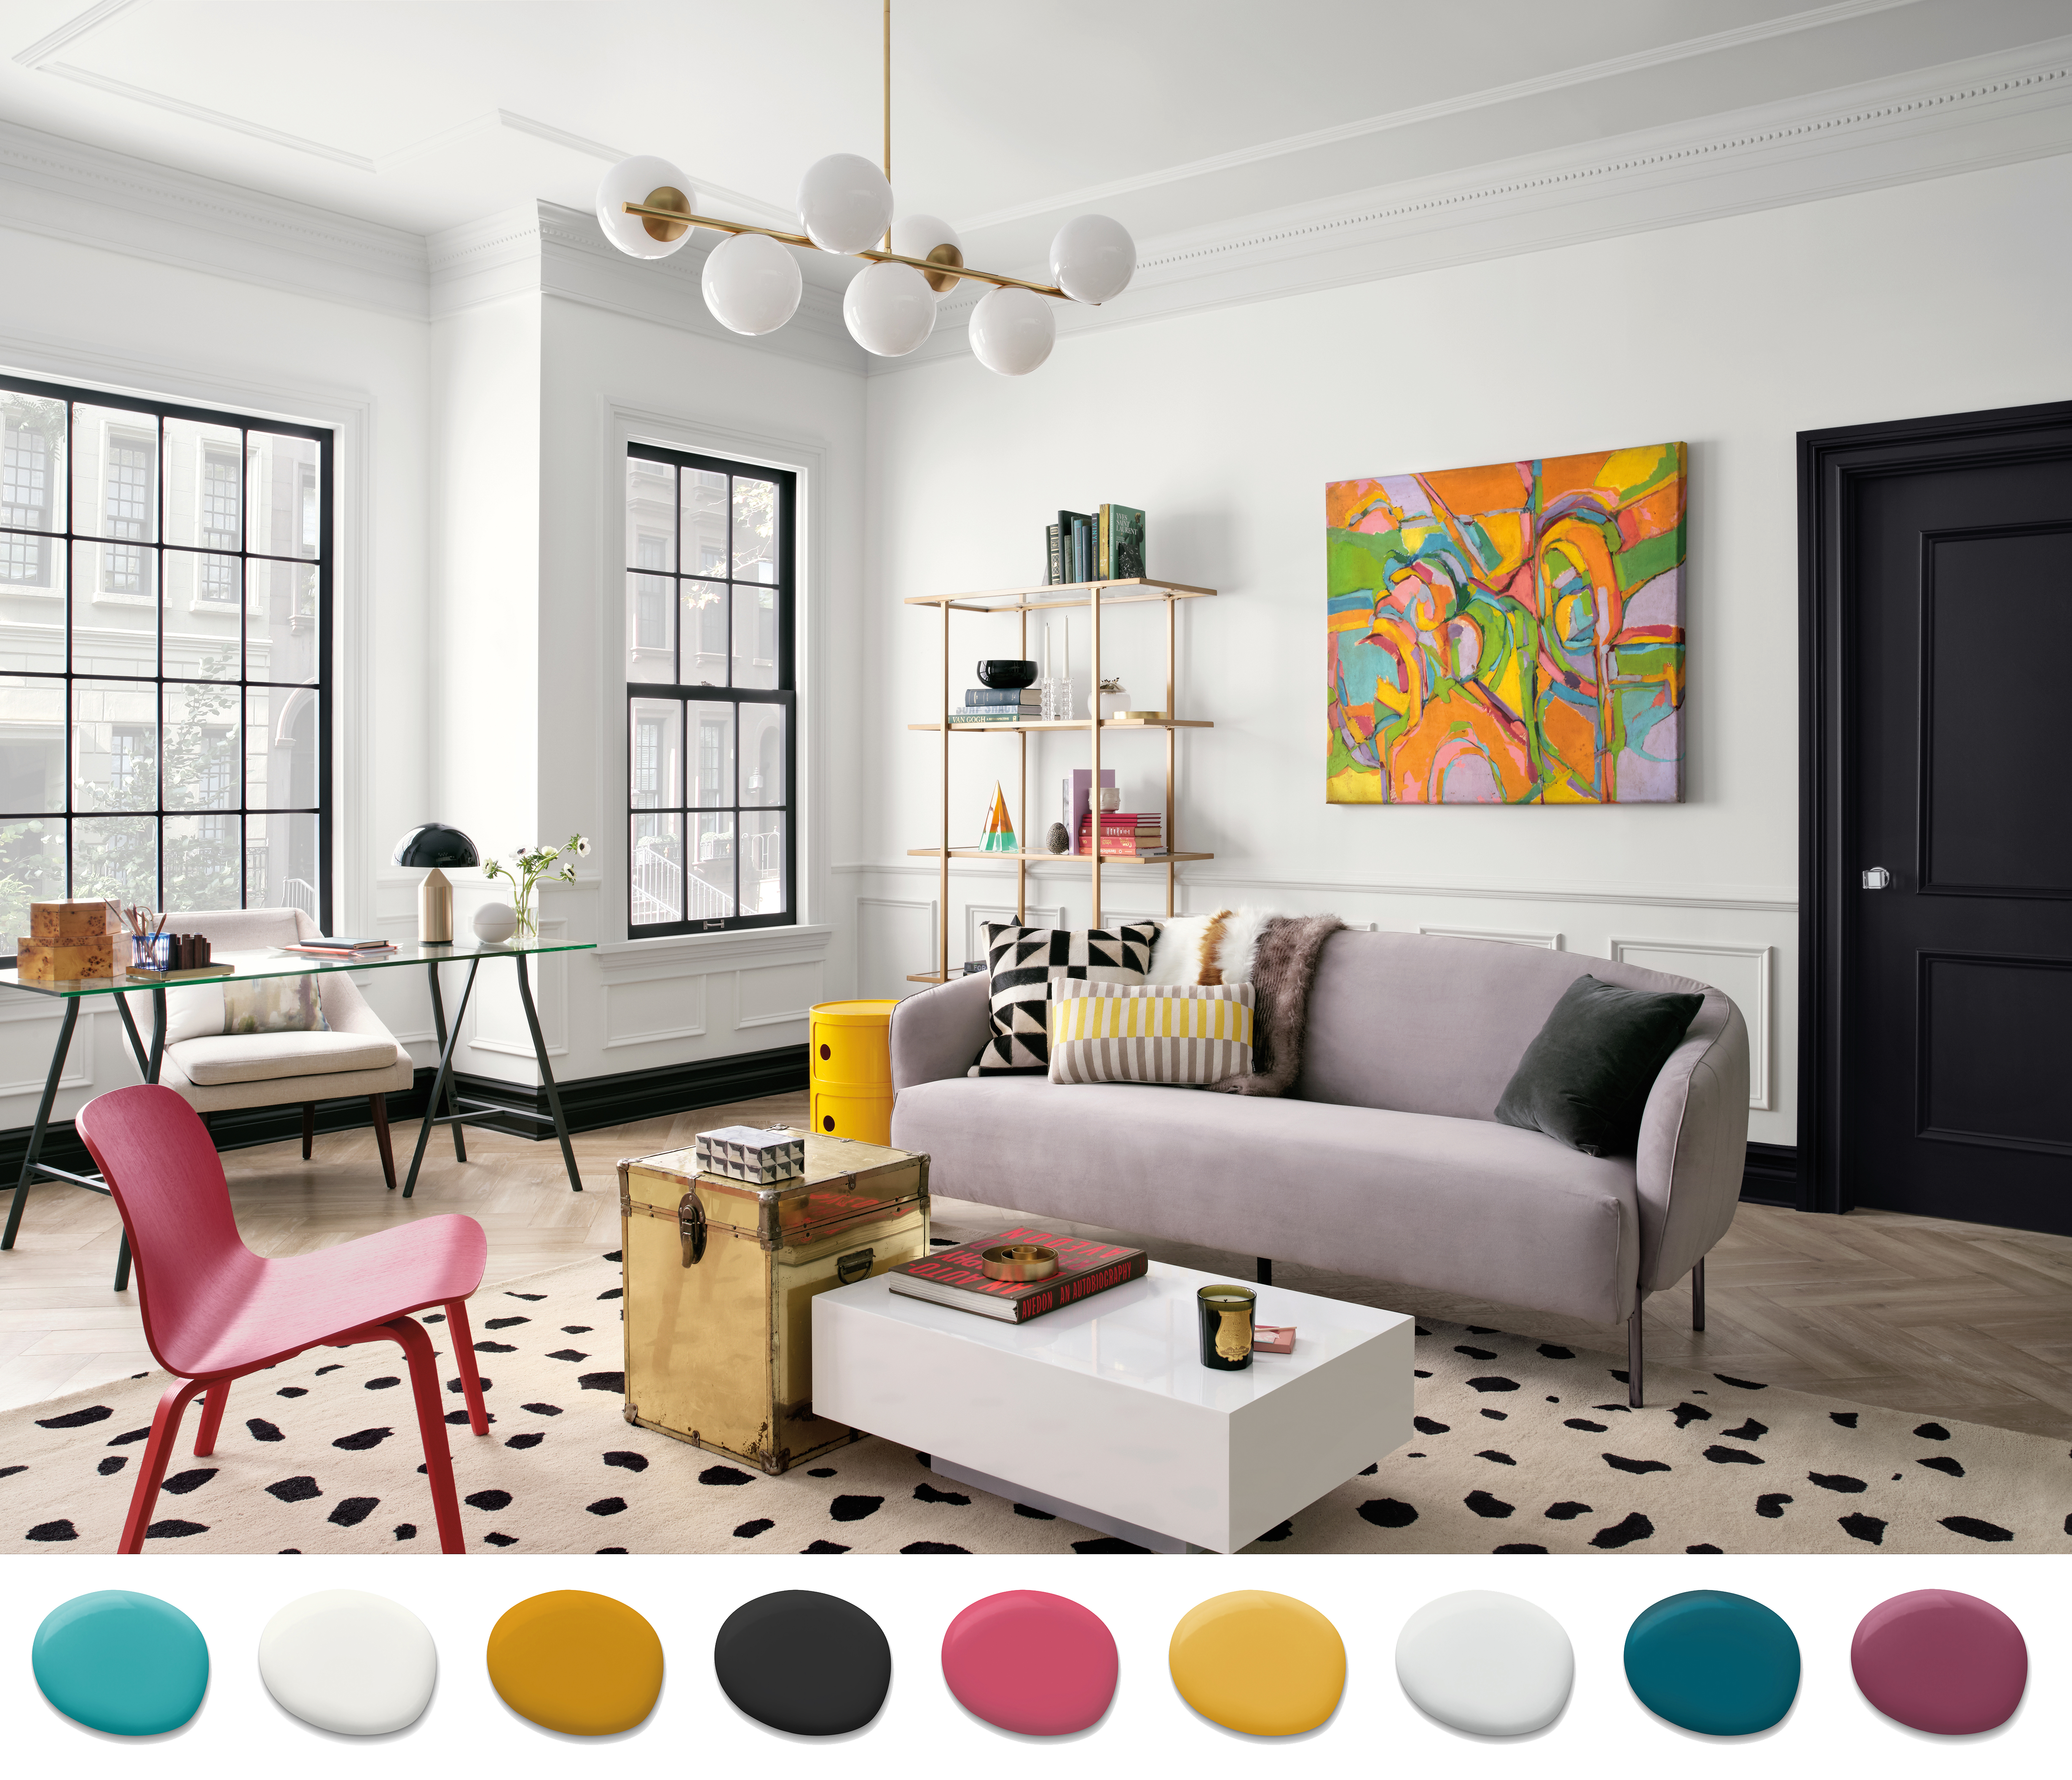 Sherwin Williams Color Trends 2020 Apartment Therapy,City Hall New York Courthouse Wedding